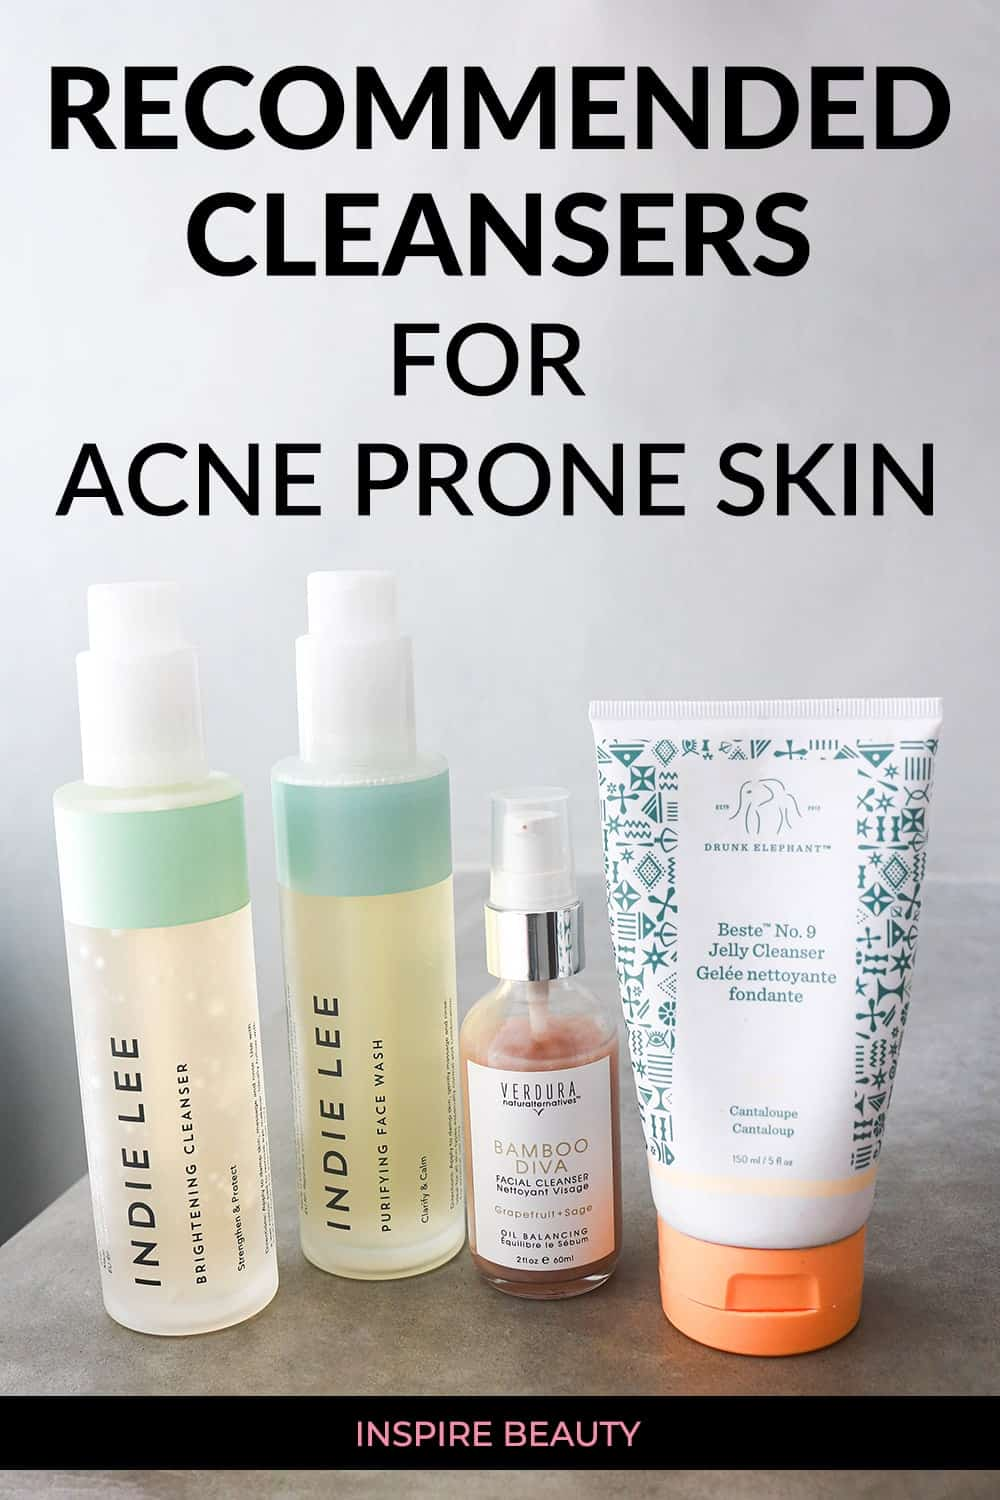 Recommended clean beauty cleansers for acne: Indie Lee Purifying Face Wash, Indie Lee Brightening Cleanser, Verdura naturalternatives Bamboo Diva Cleanser, Drunk Elephant Beste No9 Jelly Cleanser, Oskia Renaissance Cleansing Gel